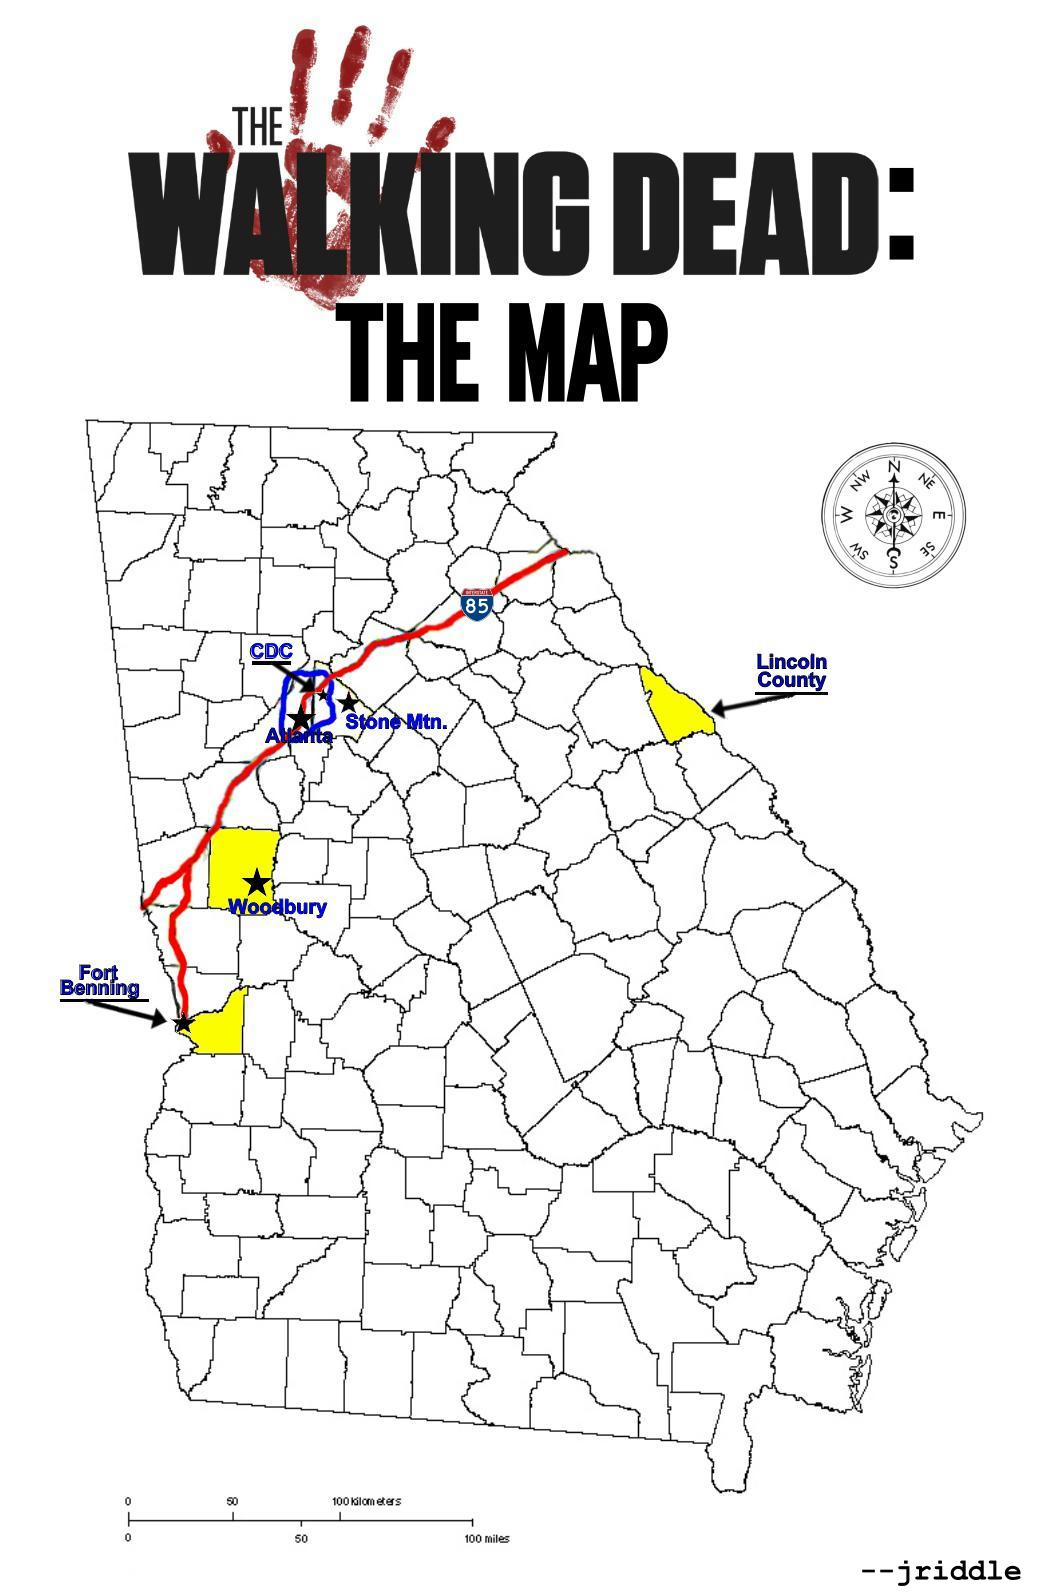 THE DIG The Geography of THE WALKING DEAD